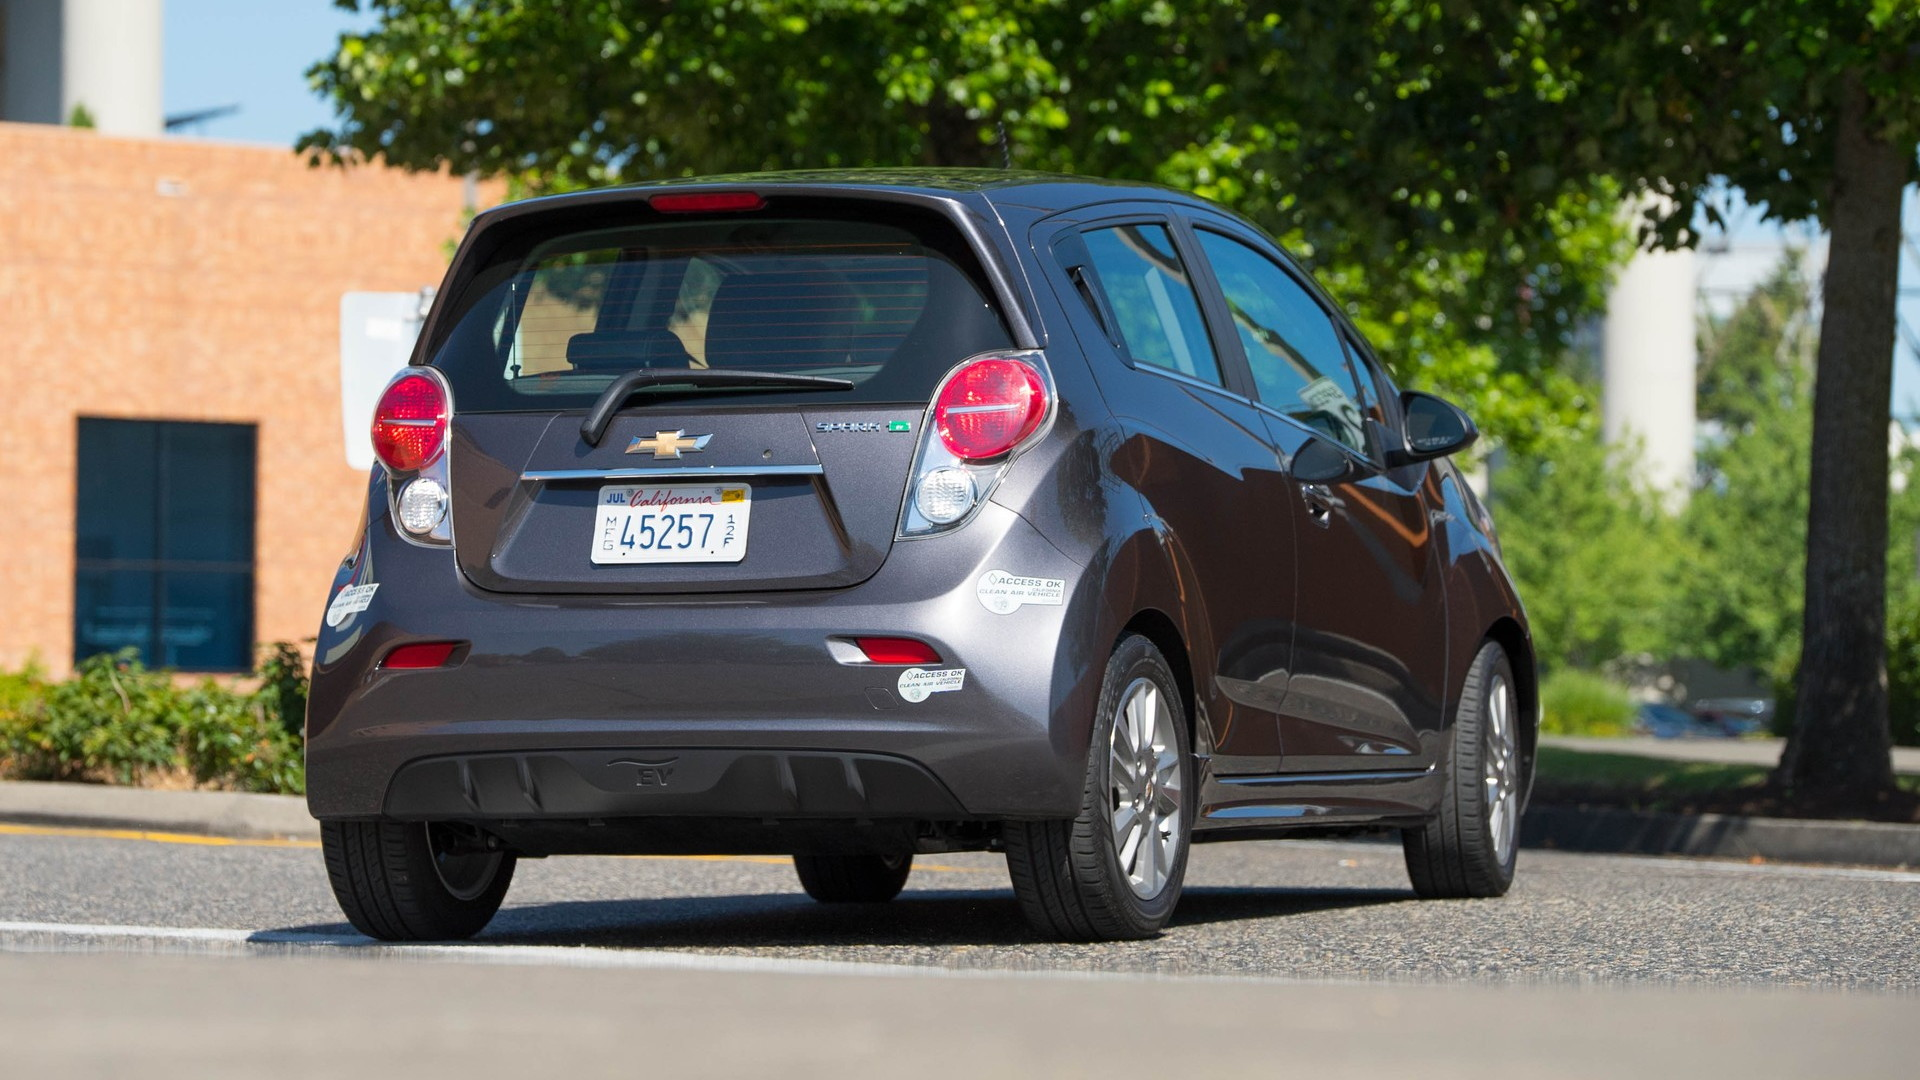 2014 Chevrolet Spark EV  -  Driven, July 2014 (NWAPA Drive Revolution)